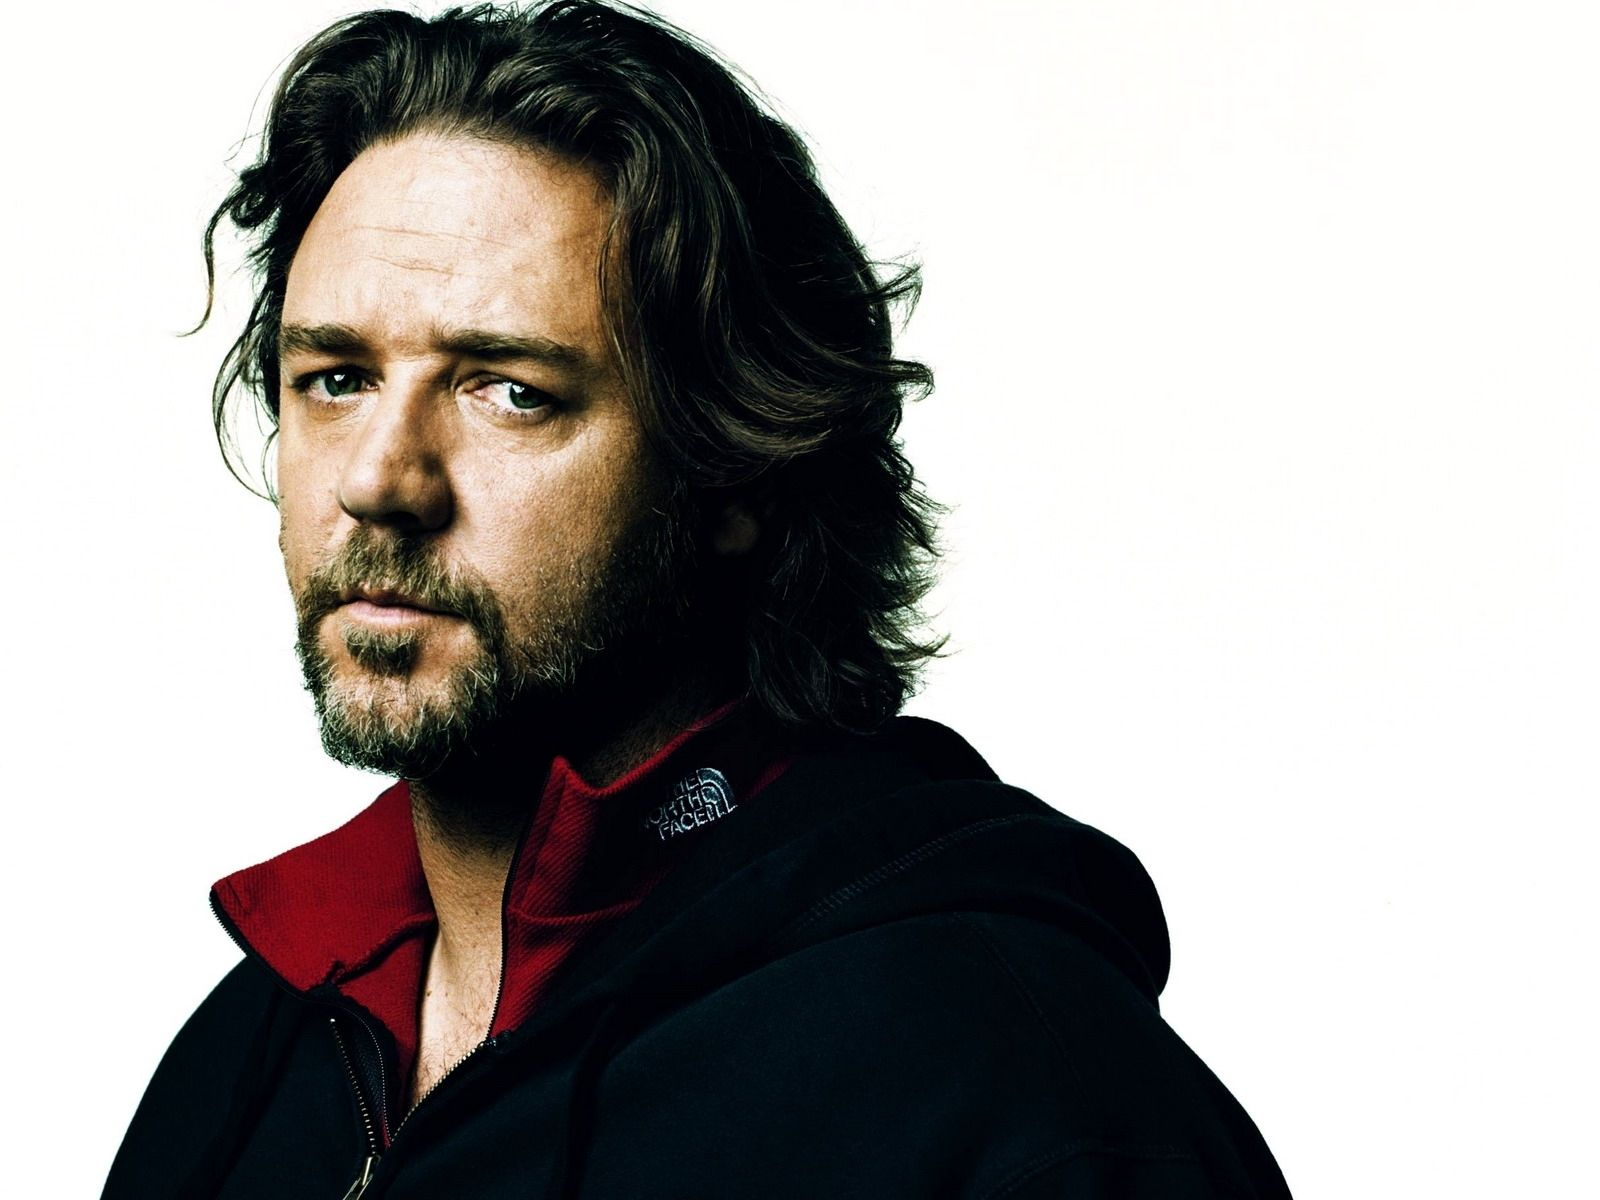 Russell Crowe 9815 1600x1200 px ~ HDWallSource